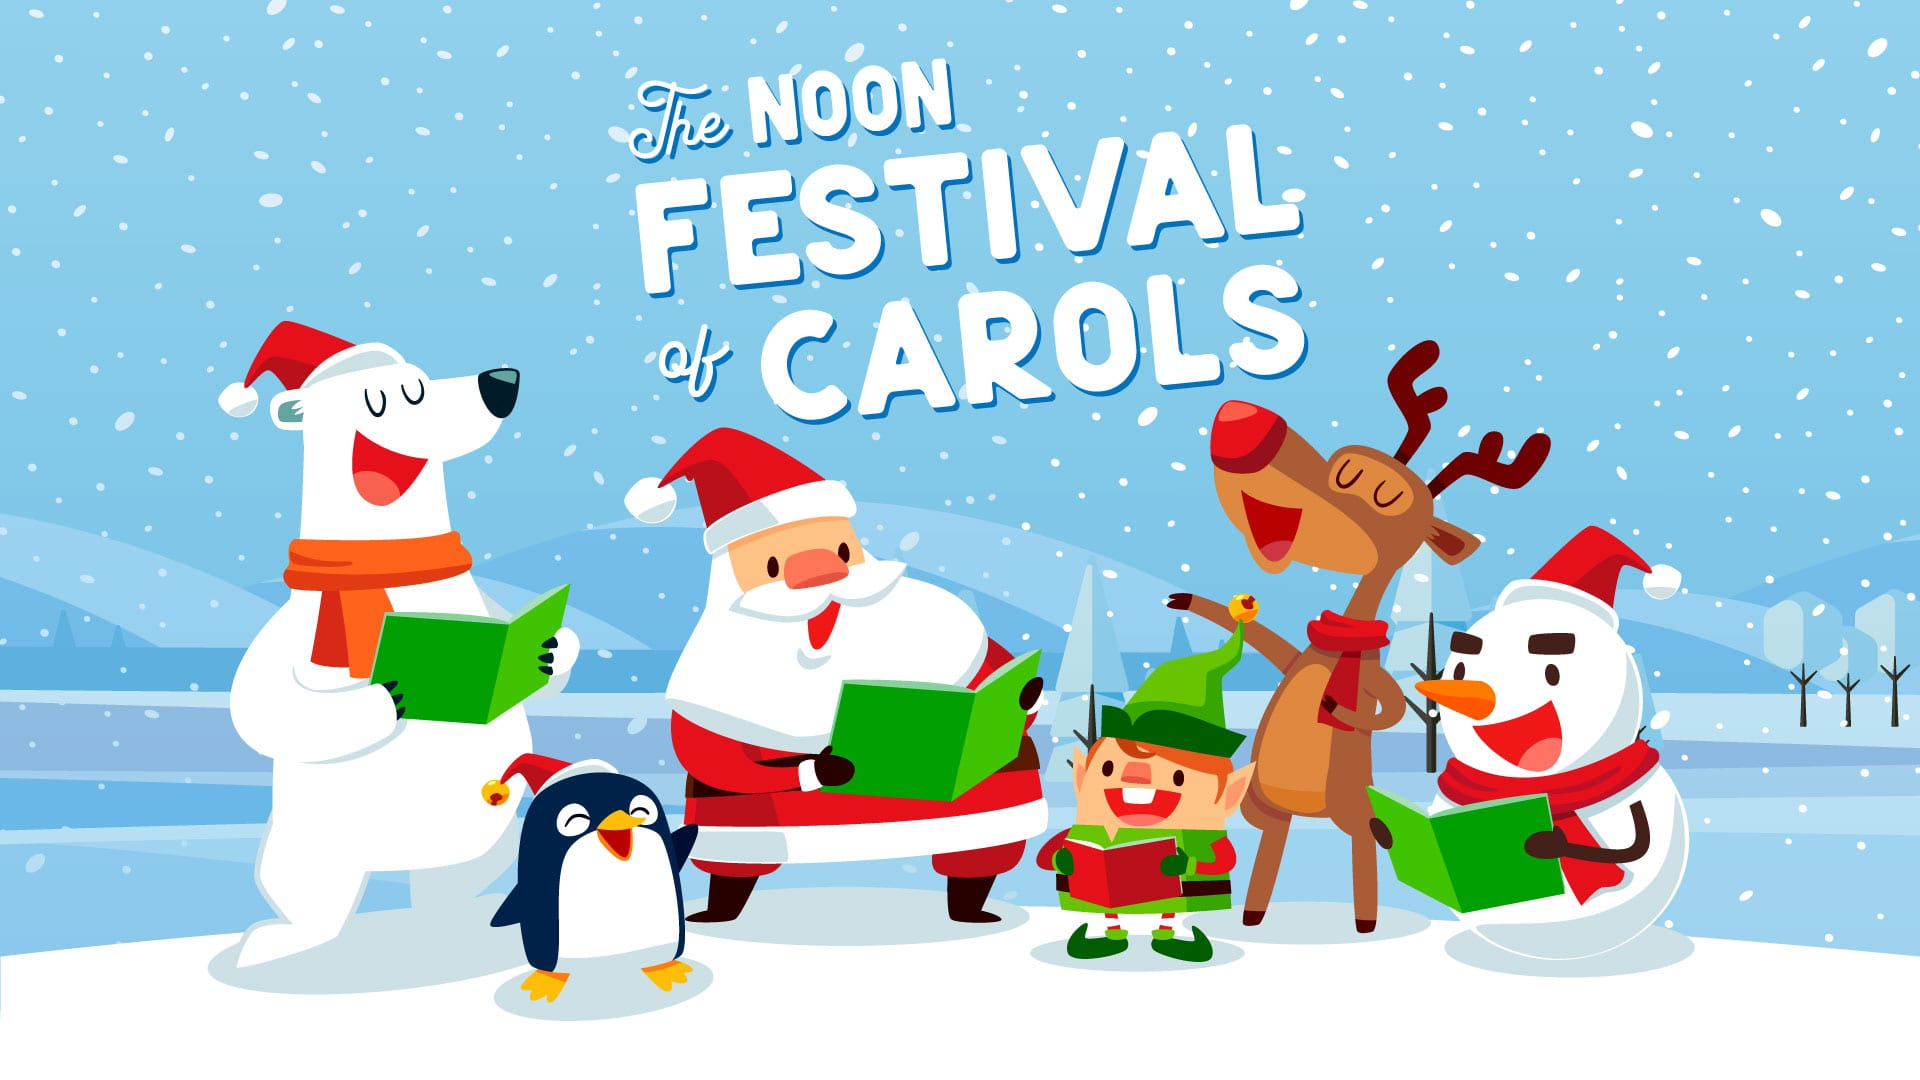 The Noon Festival of Carols